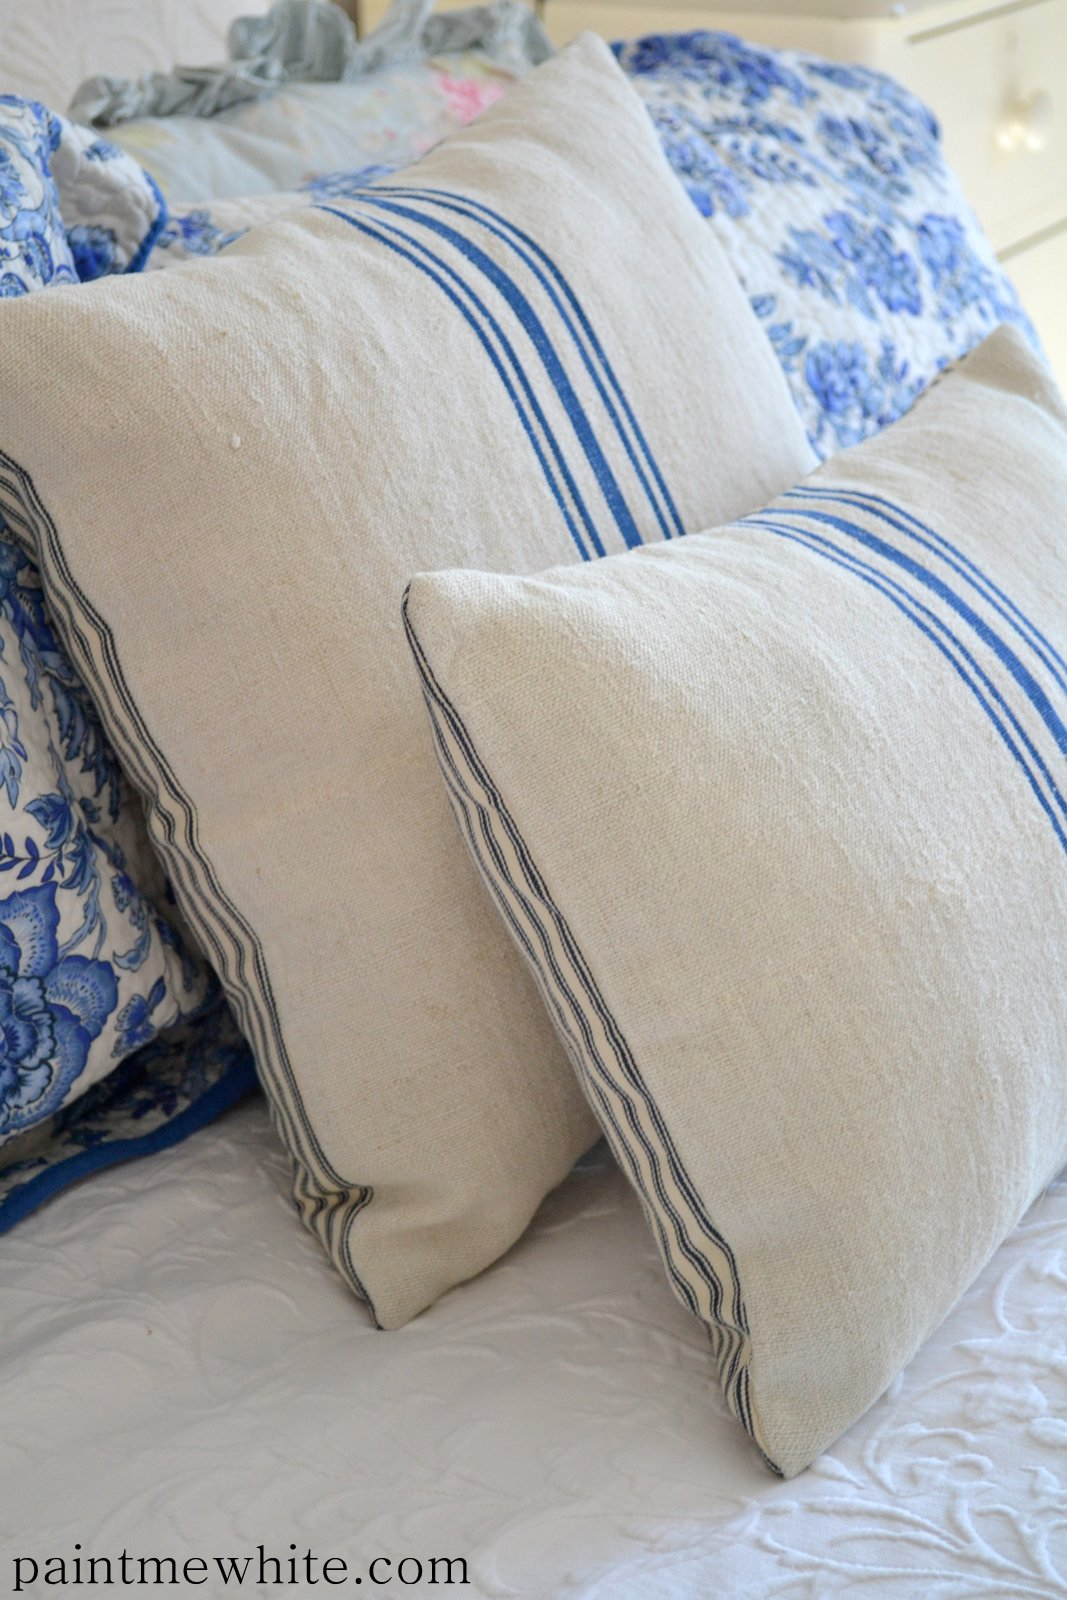 French Grainsack Cushions Now In Stock Paint Me White